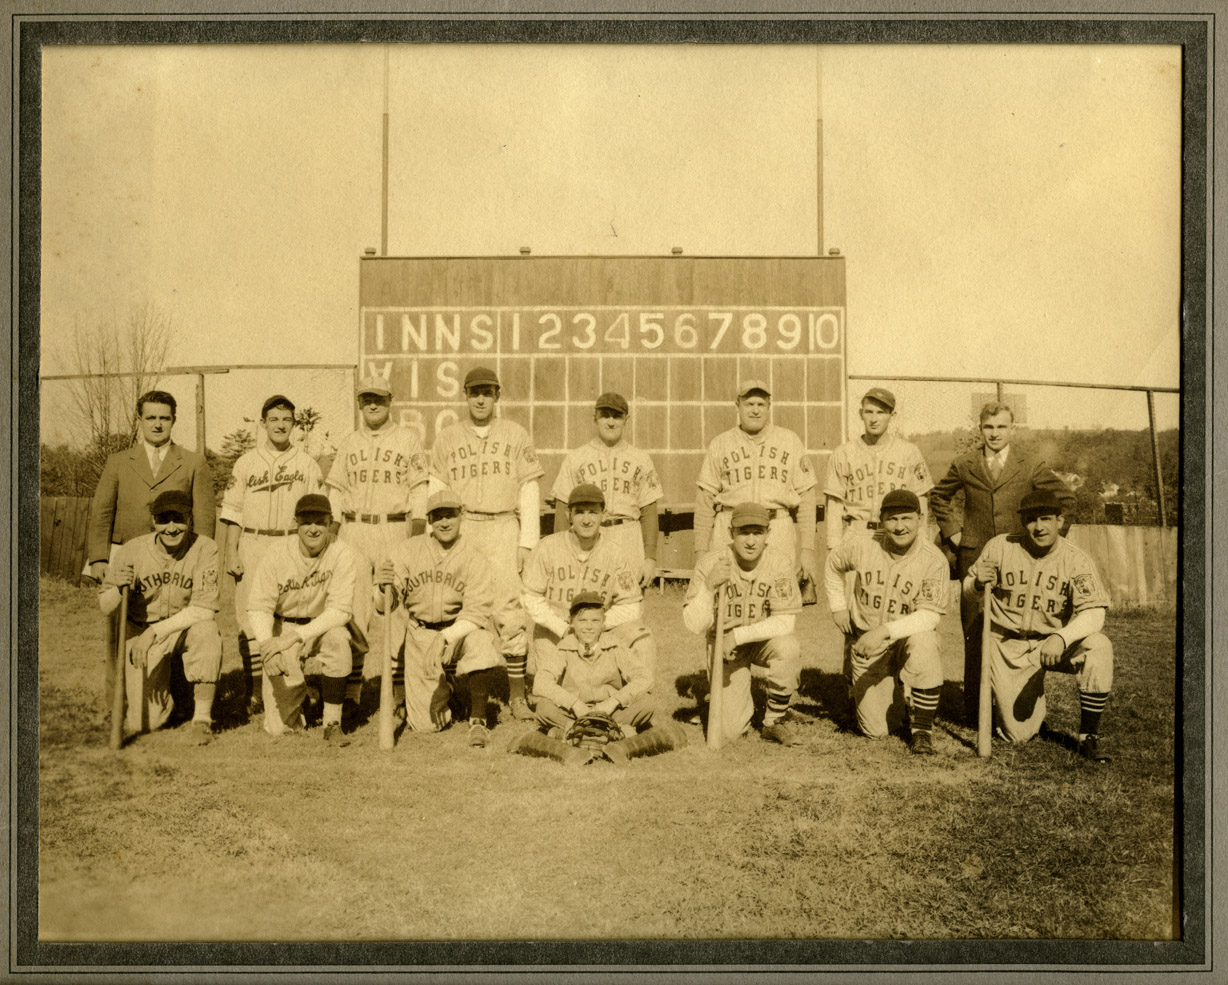 Polish Tigers baseball team, ca.1935